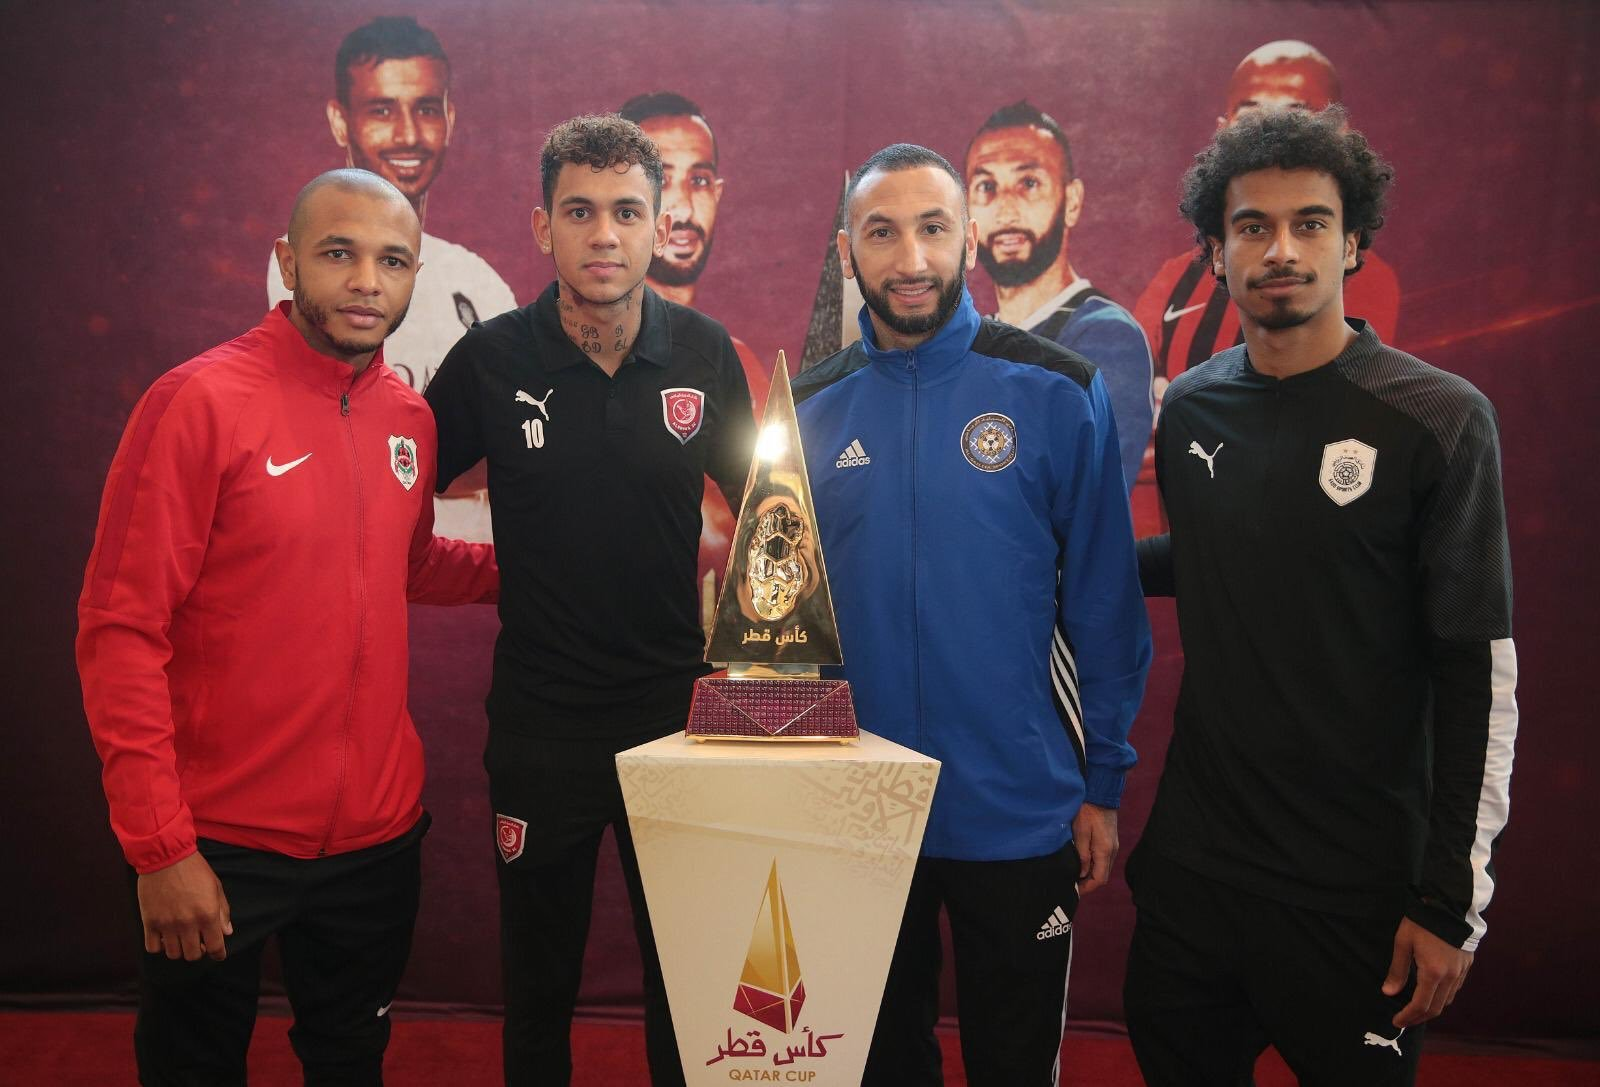 Prominent presence at start of promotion of Qatar Cup